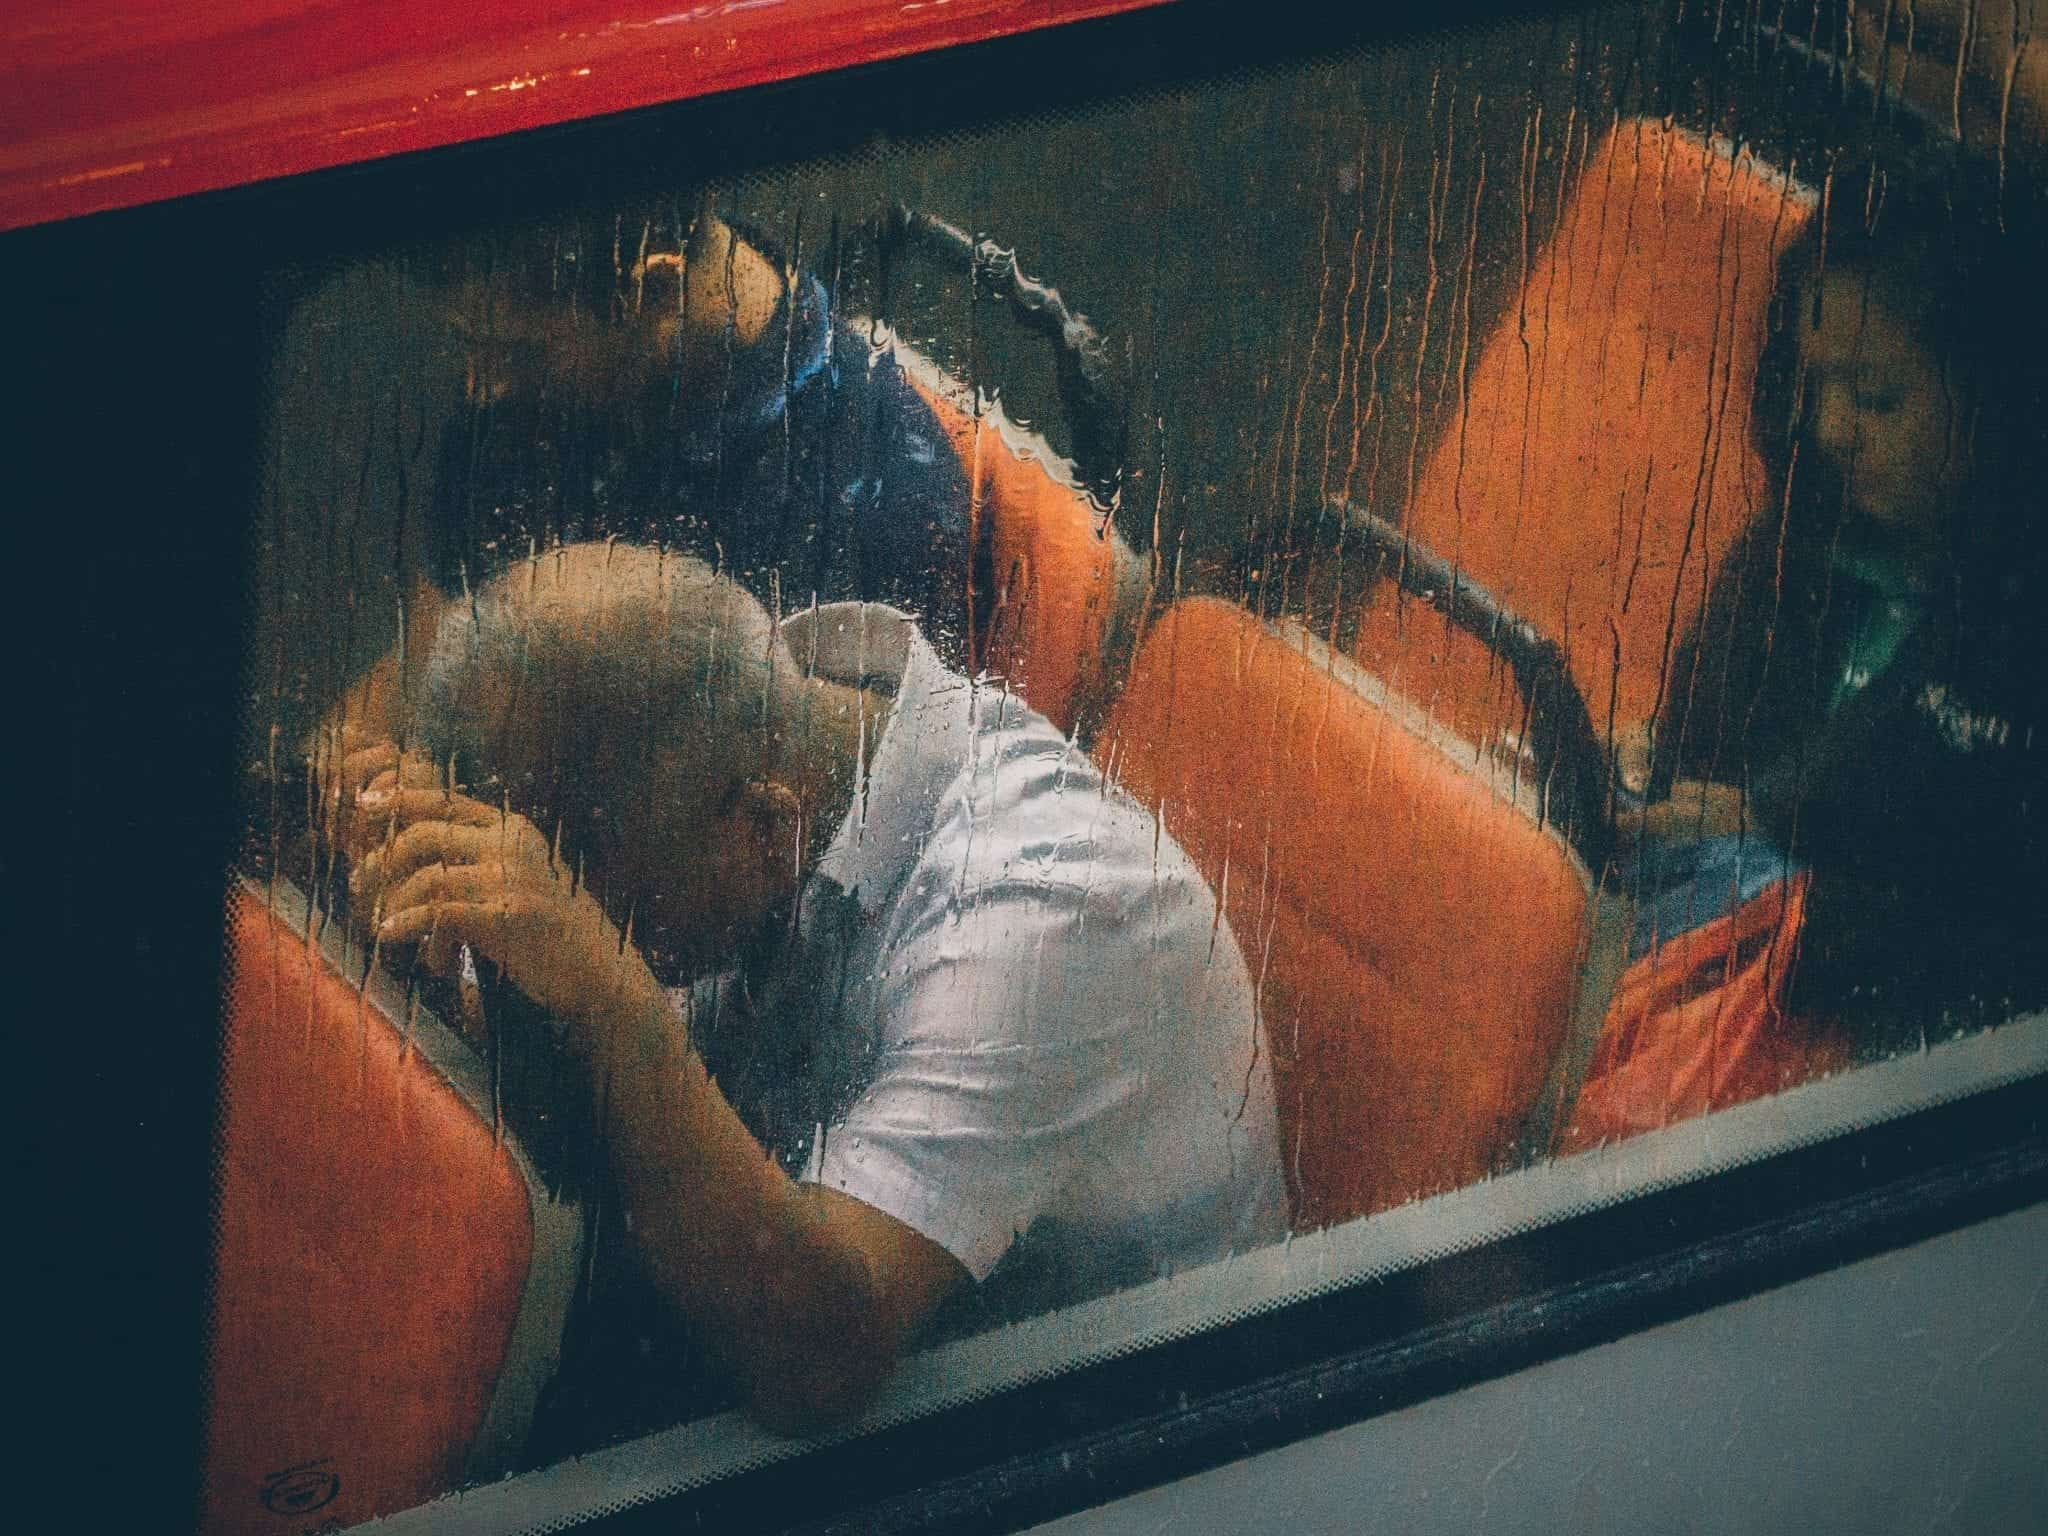 Man sleeping on train; image by Lily Banse, via Unsplash.com.